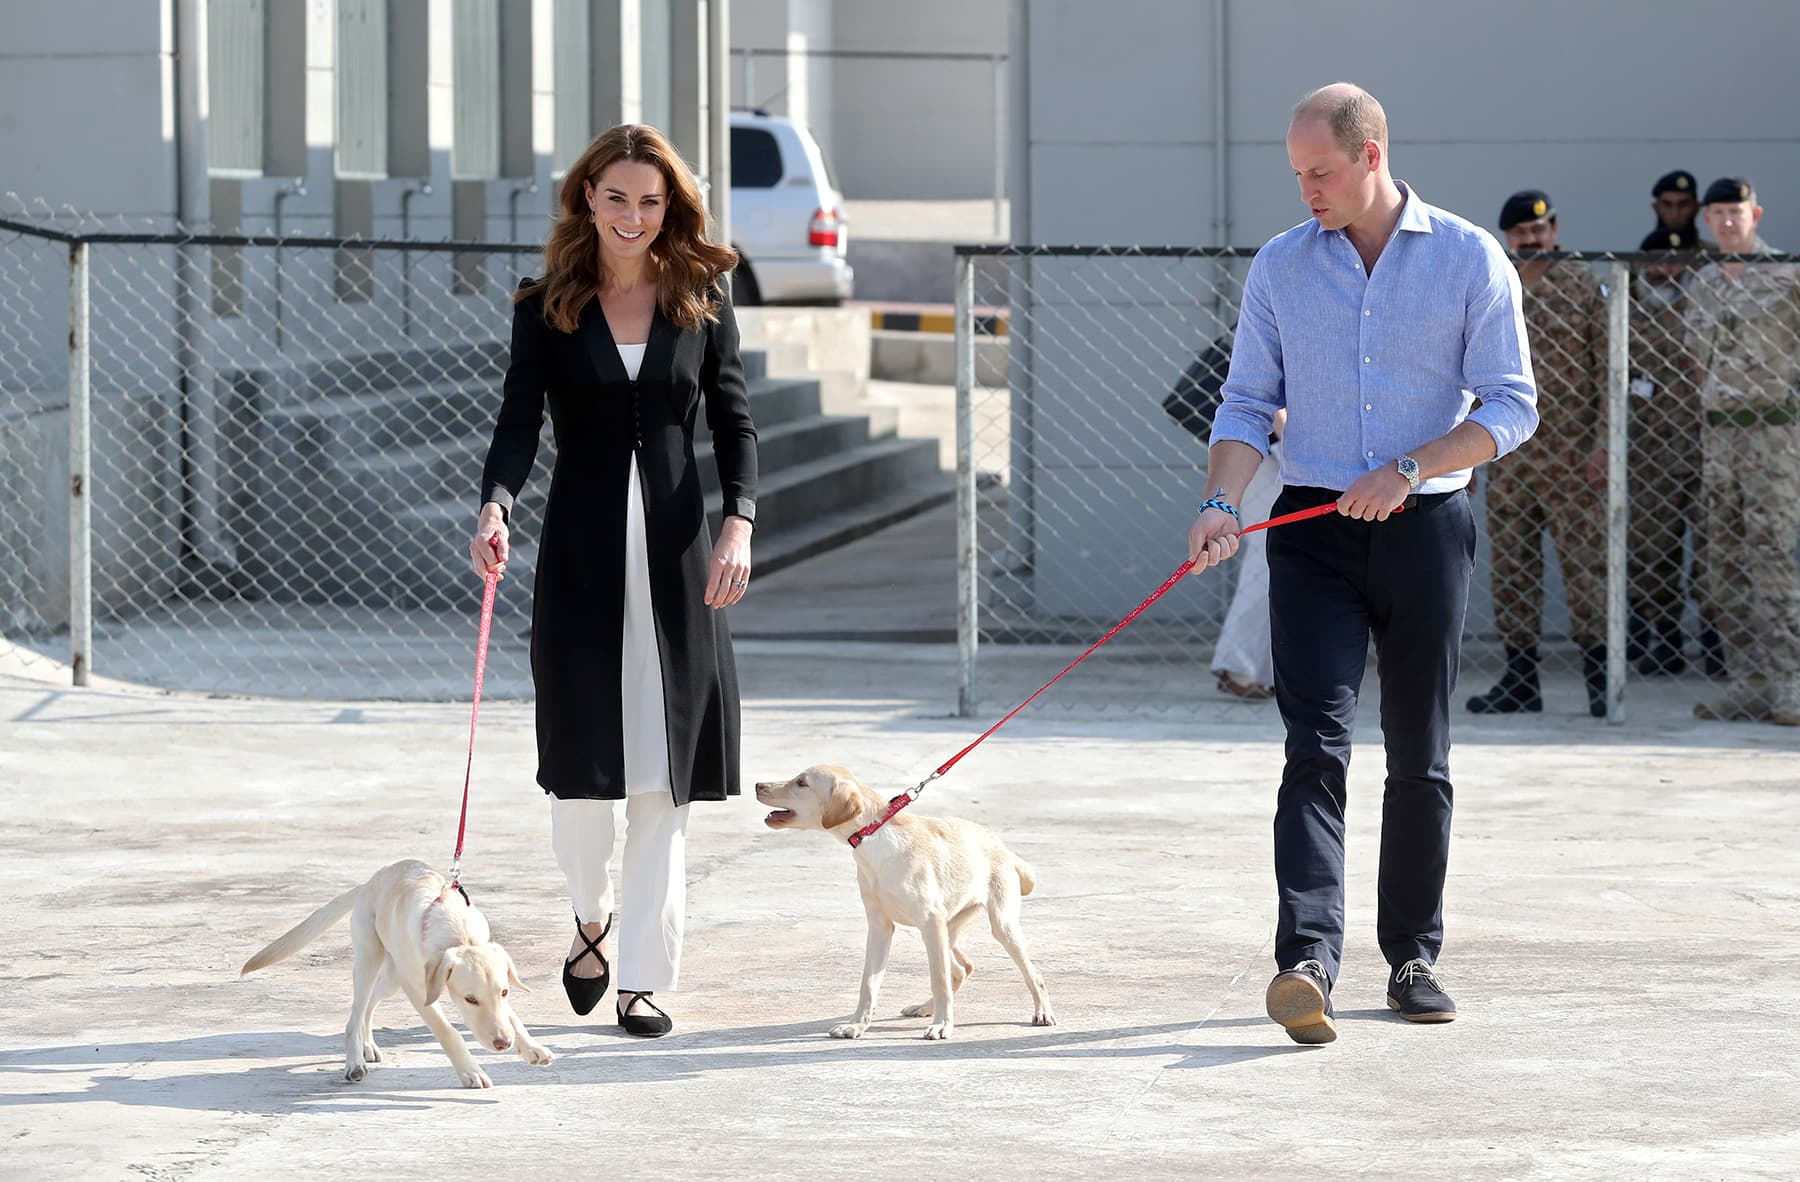 Catherine and William walk with golden labrador puppies Salto and Sky as they visit an Army Canine Centre, where Britain provides support to a programme that trains dogs to identify explosive devices, in Rawalpindi, October 18, 2019. — Reuters